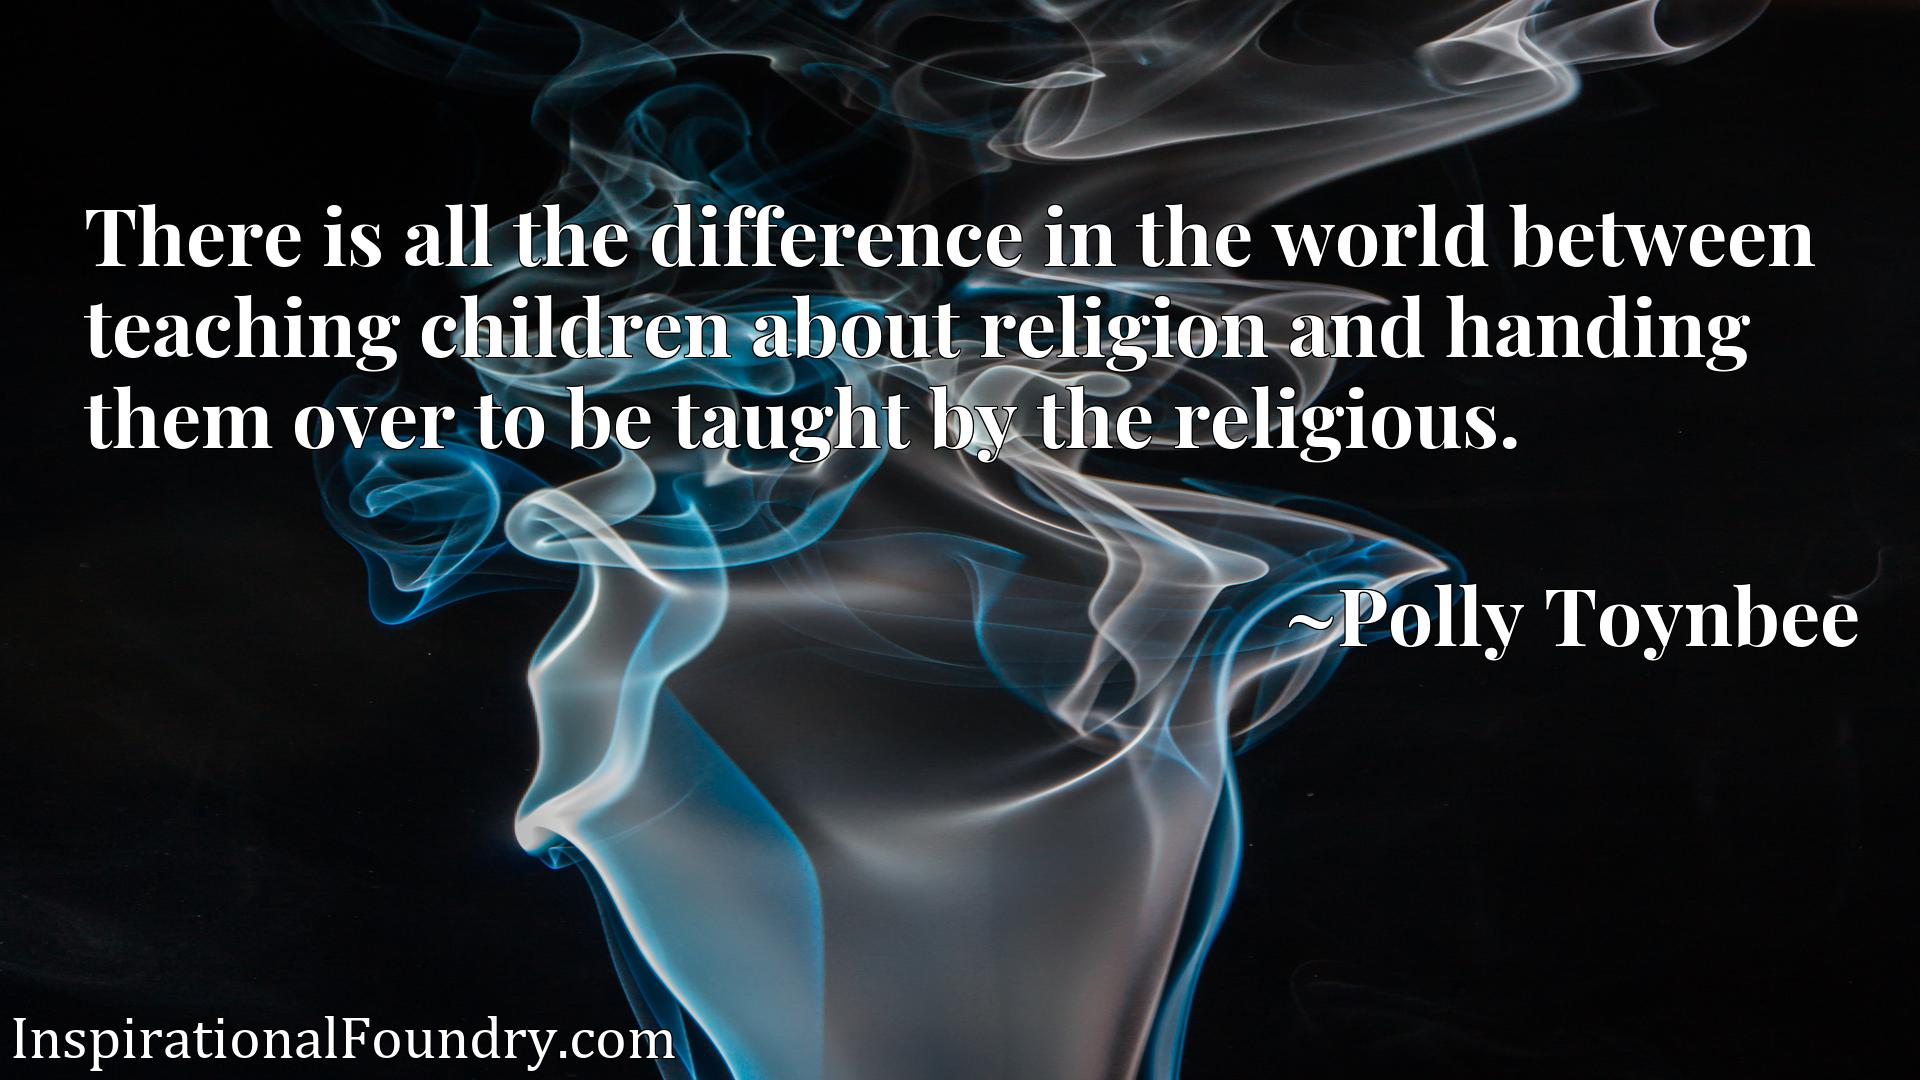 Quote Picture :There is all the difference in the world between teaching children about religion and handing them over to be taught by the religious.